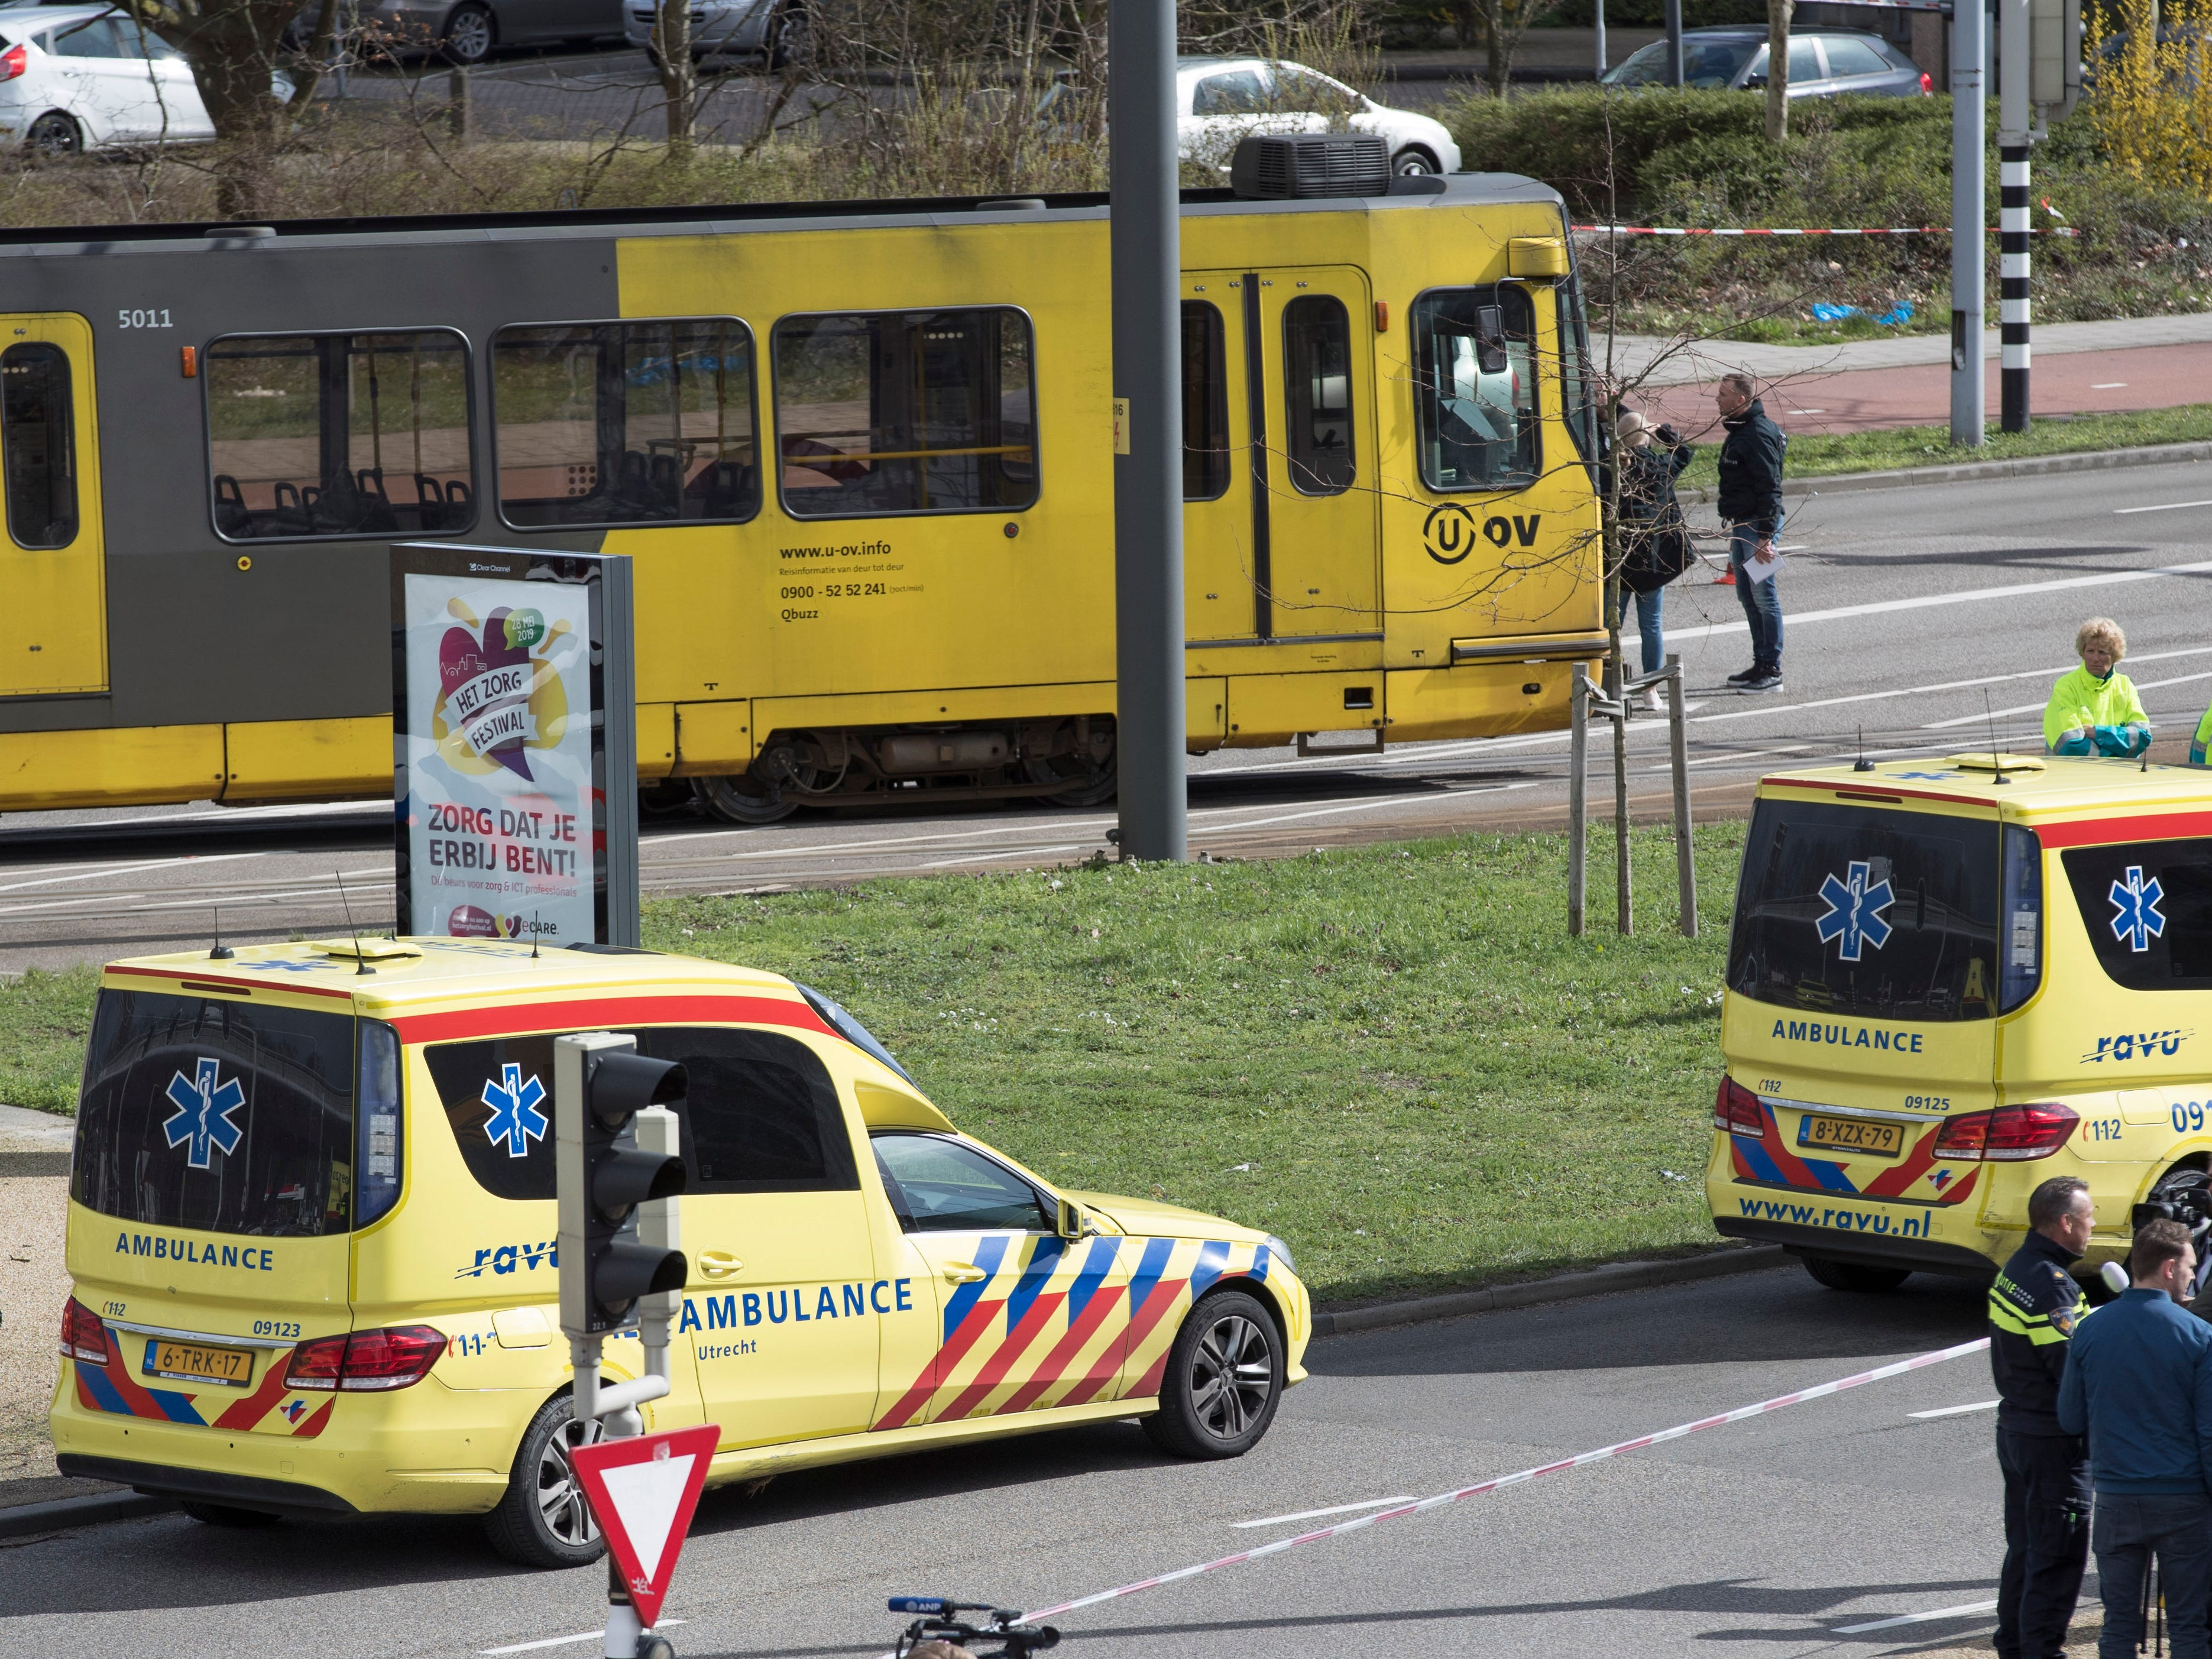 """Ambulances are seen next to a tram after a shooting in Utrecht, Netherlands, March 18, 2019. Police in the central Dutch city of Utrecht say on Twitter that """"multiple"""" people have been injured as a result of a shooting in a tram in a residential neighborhood."""